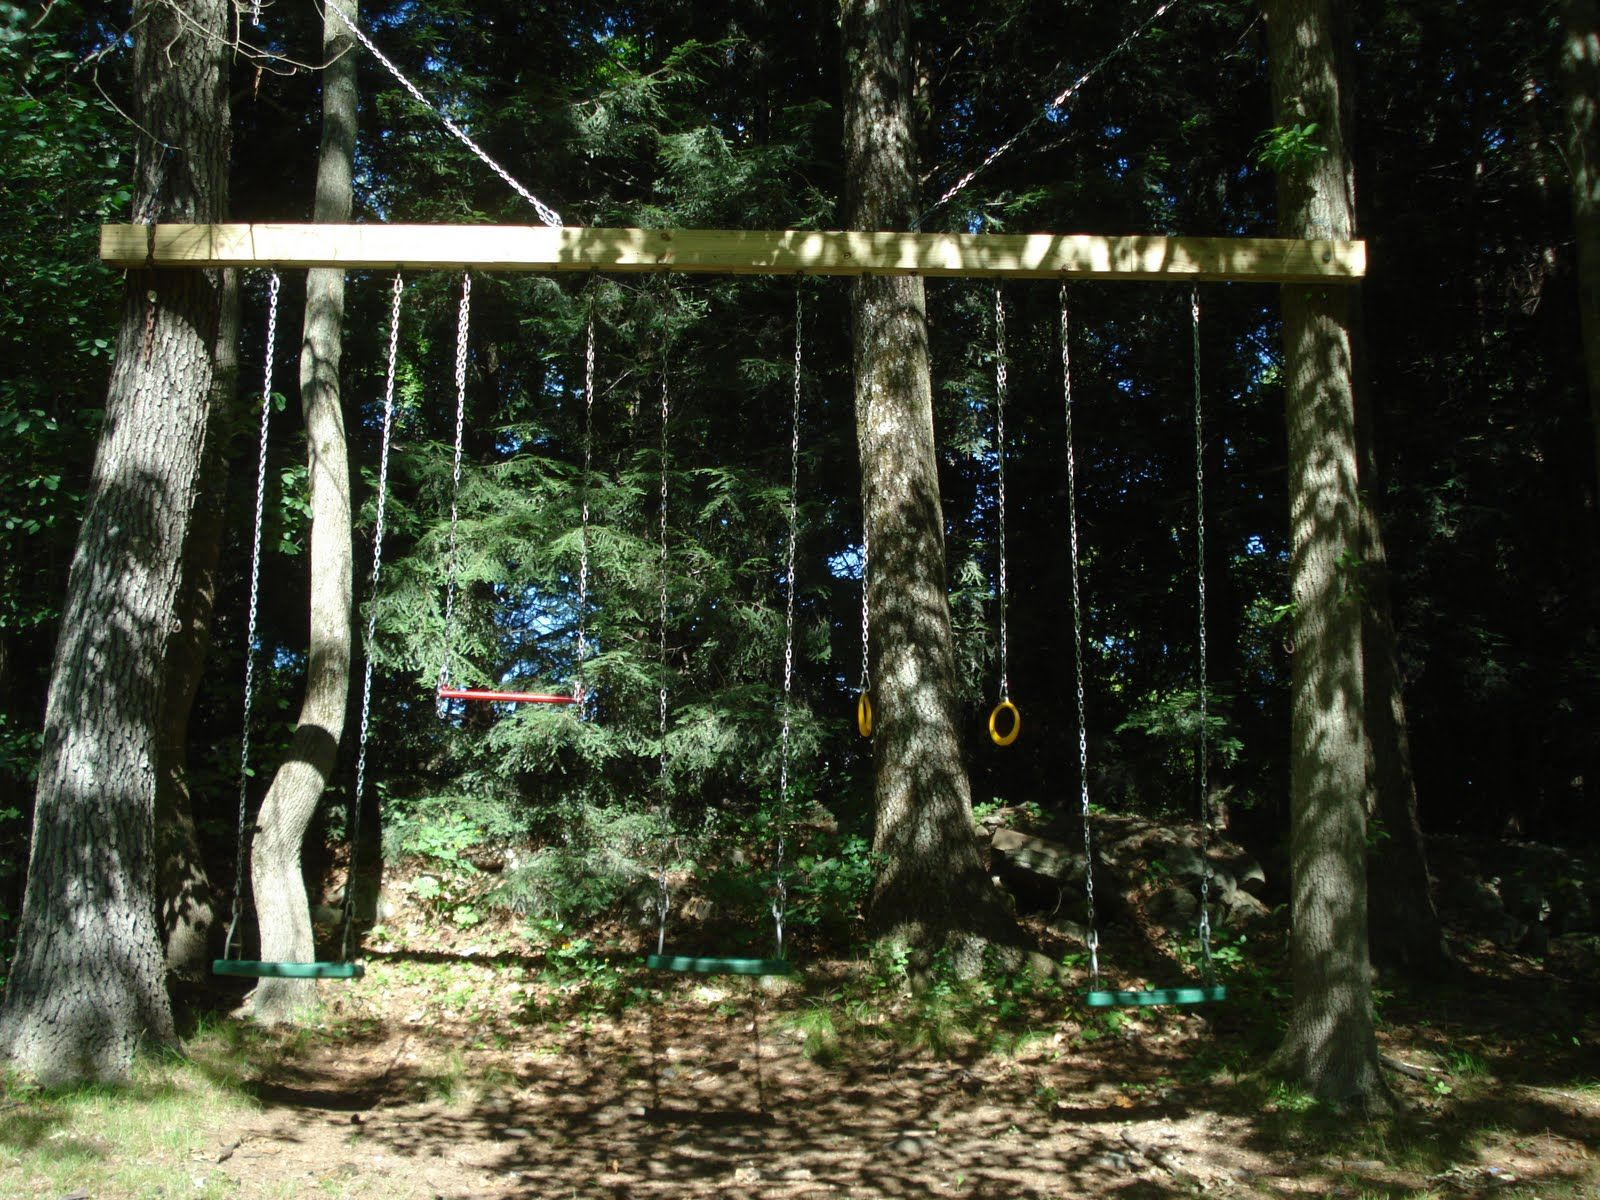 Swings To Hang From Trees Around 7 Years Ago I Put Up A Swing Set It Was Little More Than A 16 Swing Set Backyard Adventure Natural Playground